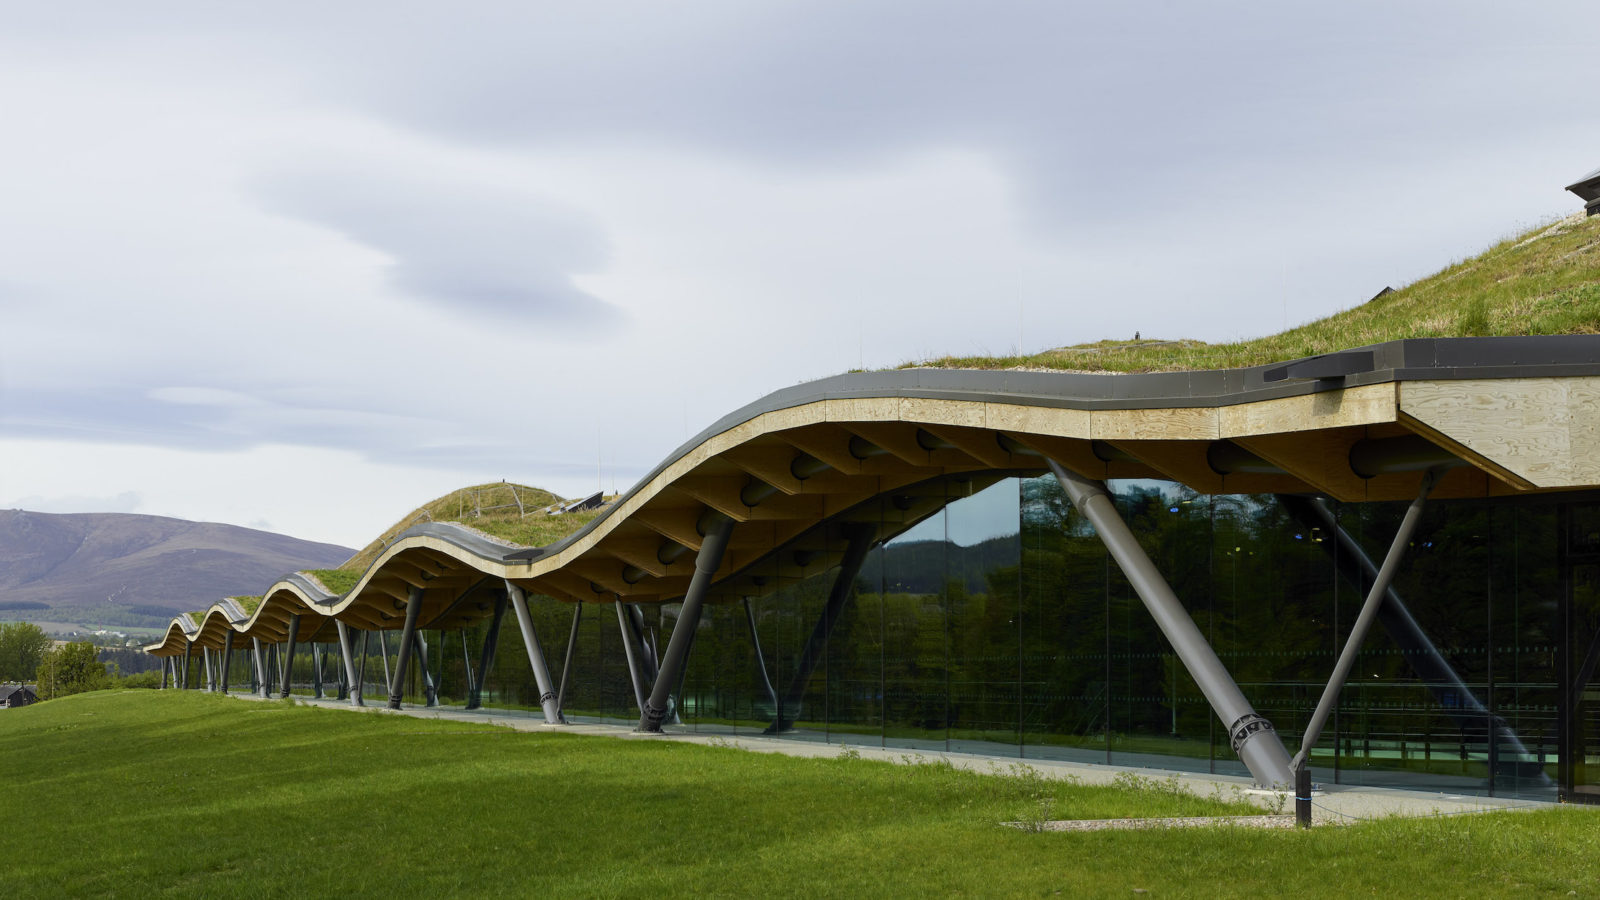 Macallan Distillery and Visitor Centre, Rogers Stirk Harbour + Partners, RIBA Stirling Prize 2019